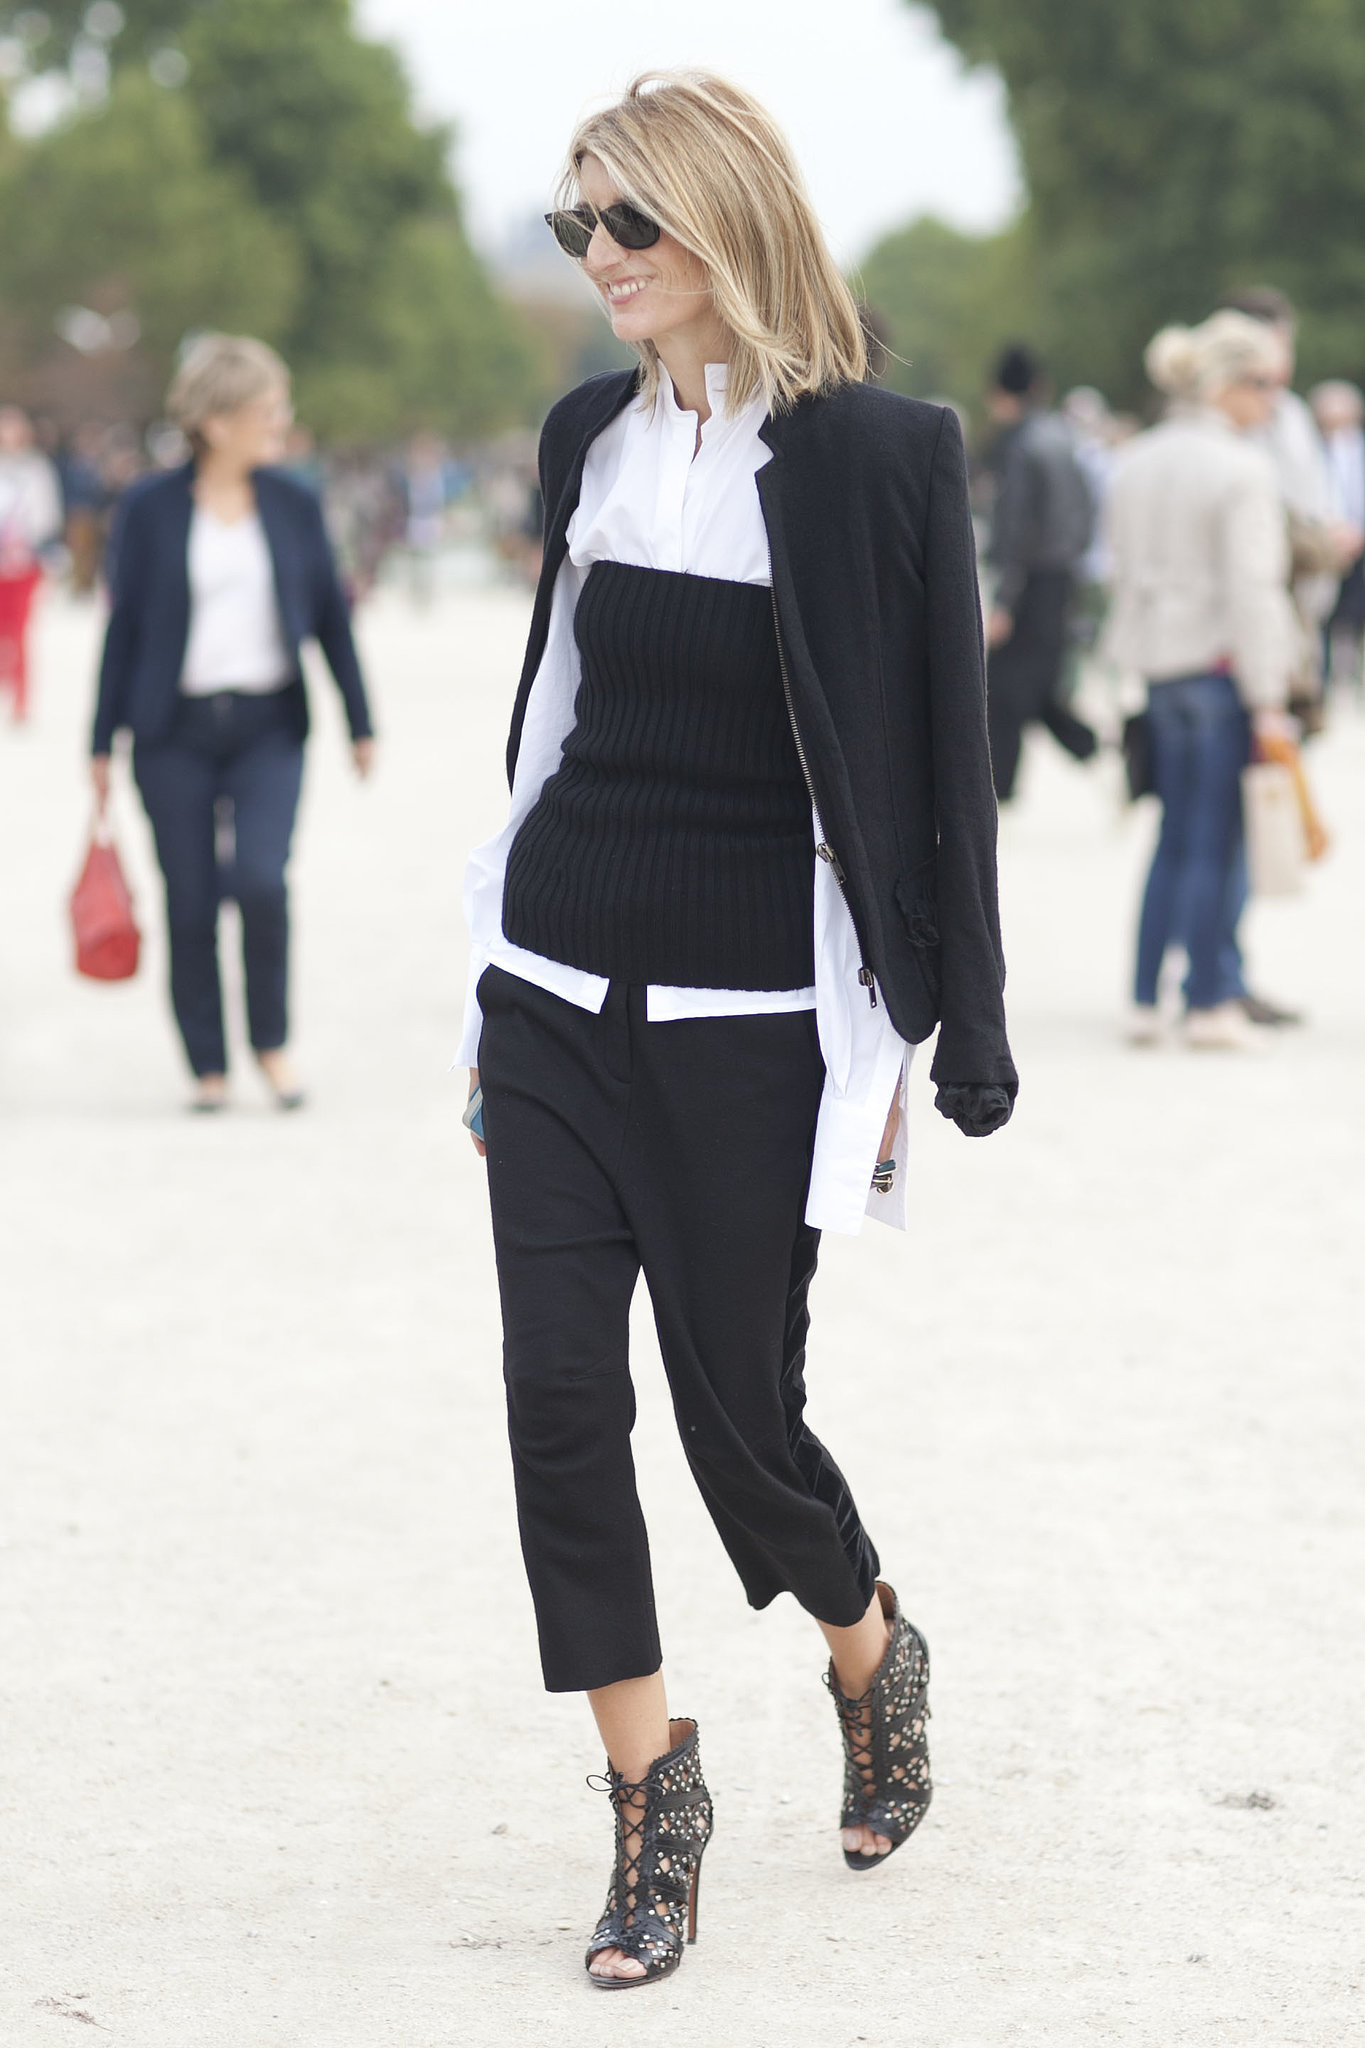 Again, (Really) Change Your Look With Layers